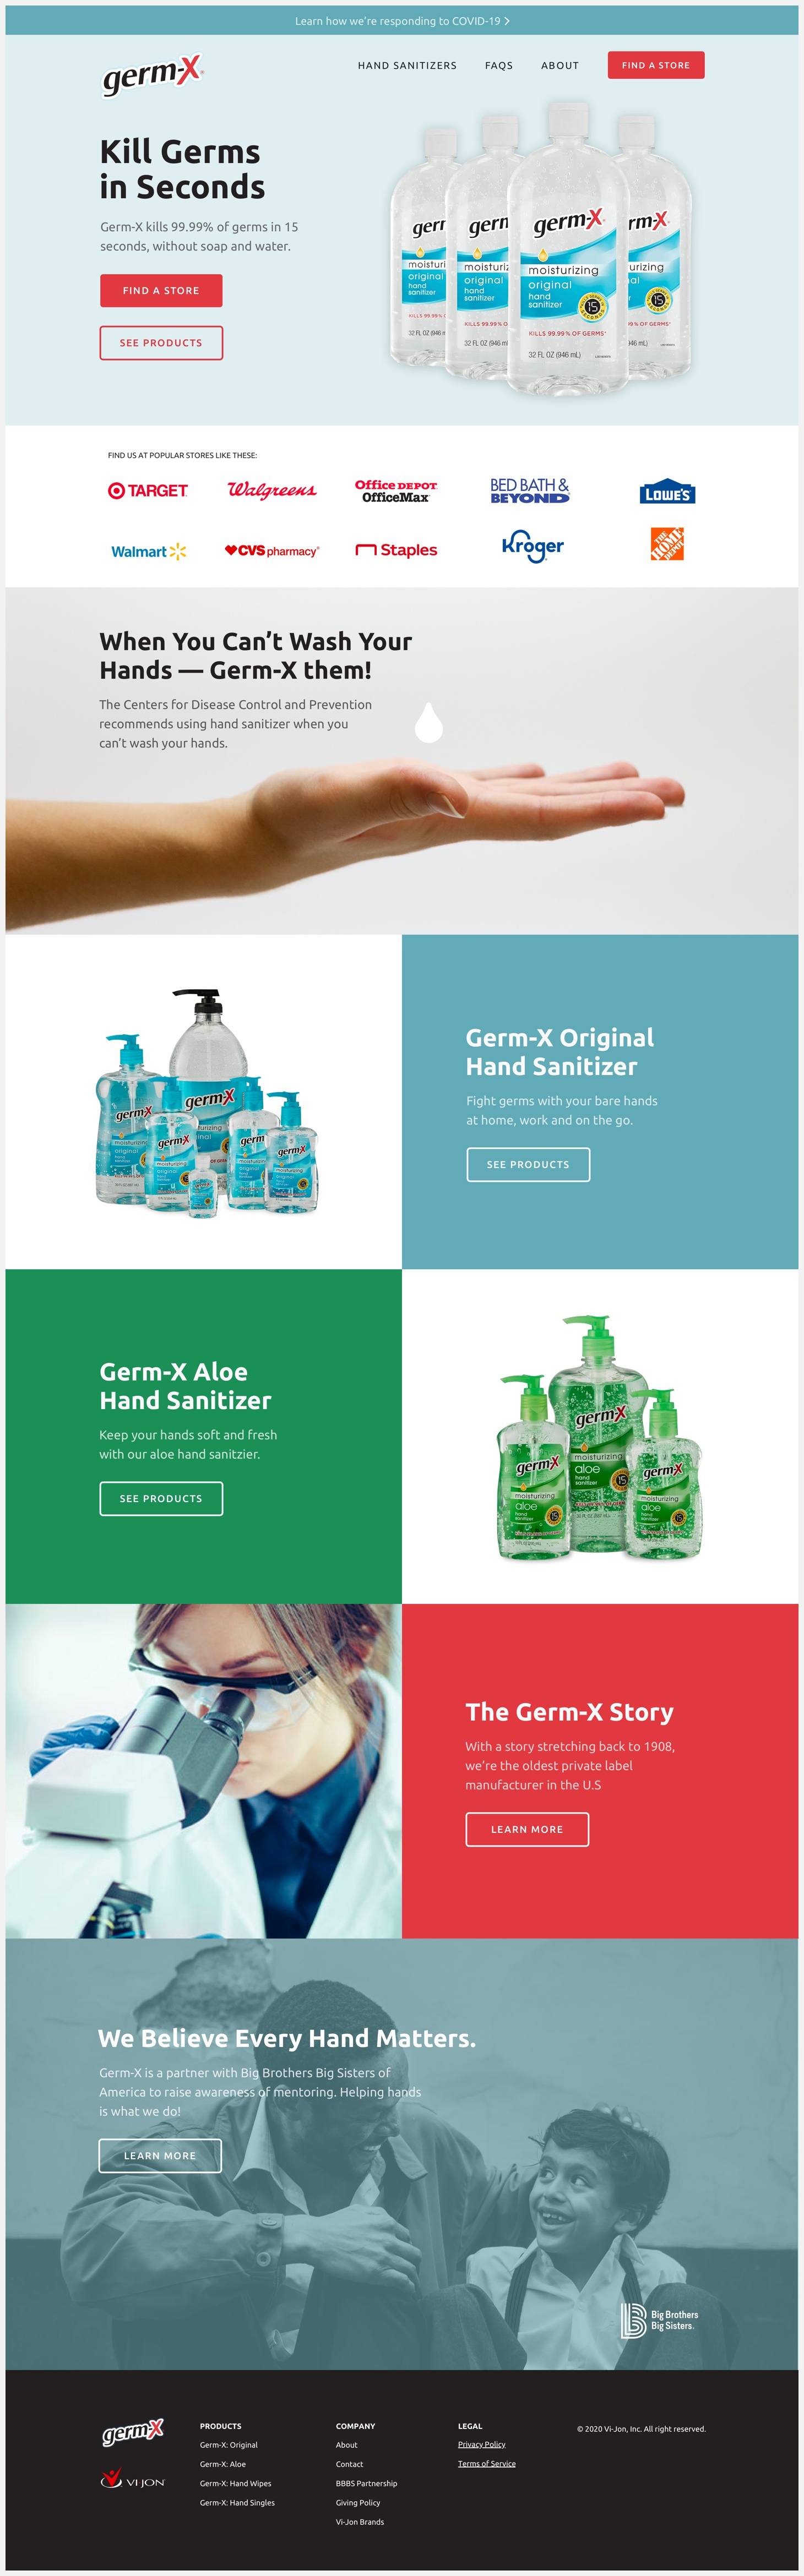 The redesigned Germ-X website.